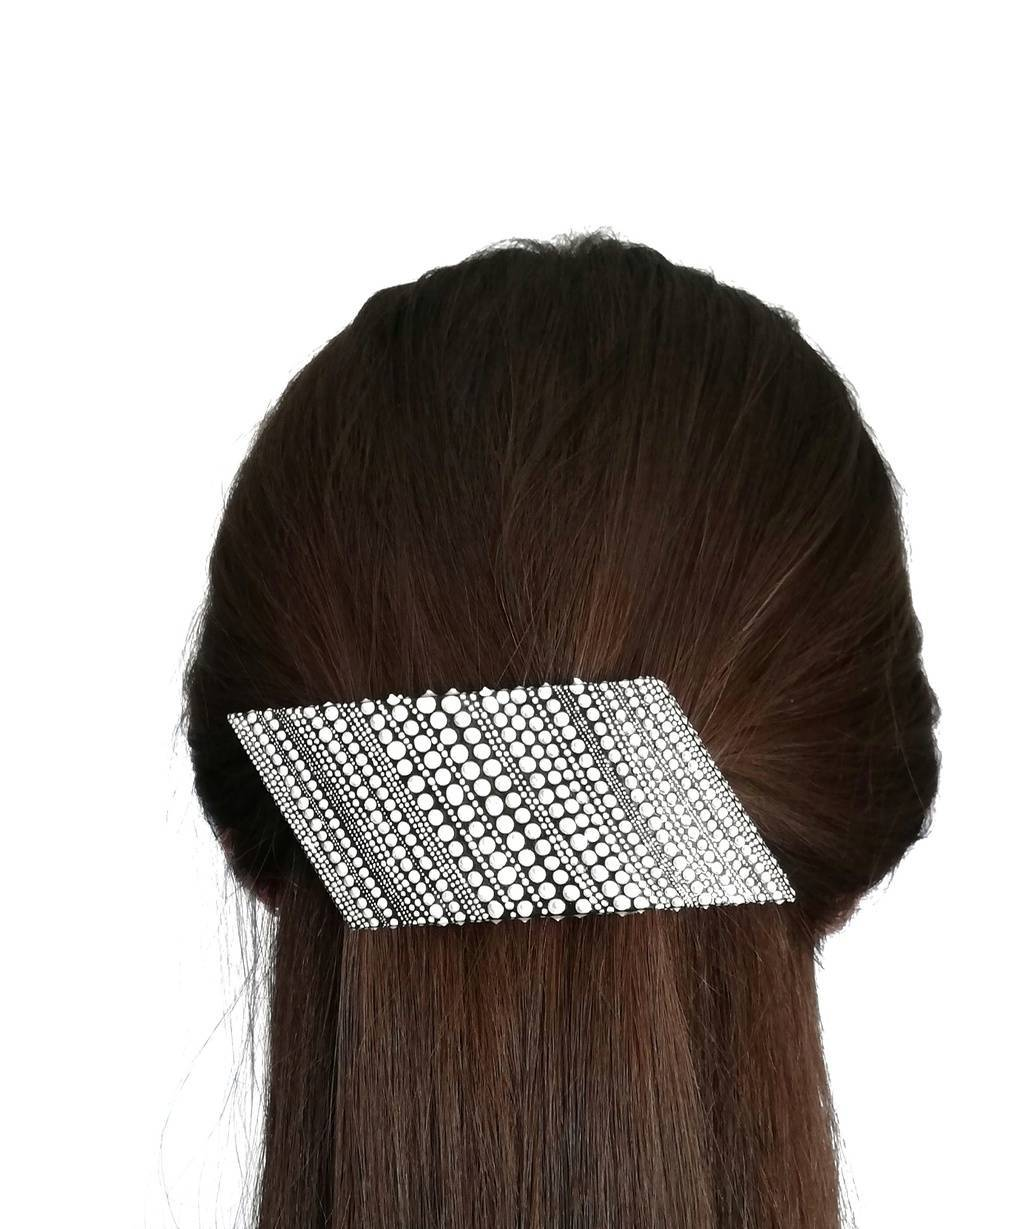 Parallelogram shaped hair jewelry clip. LINE. WHITE